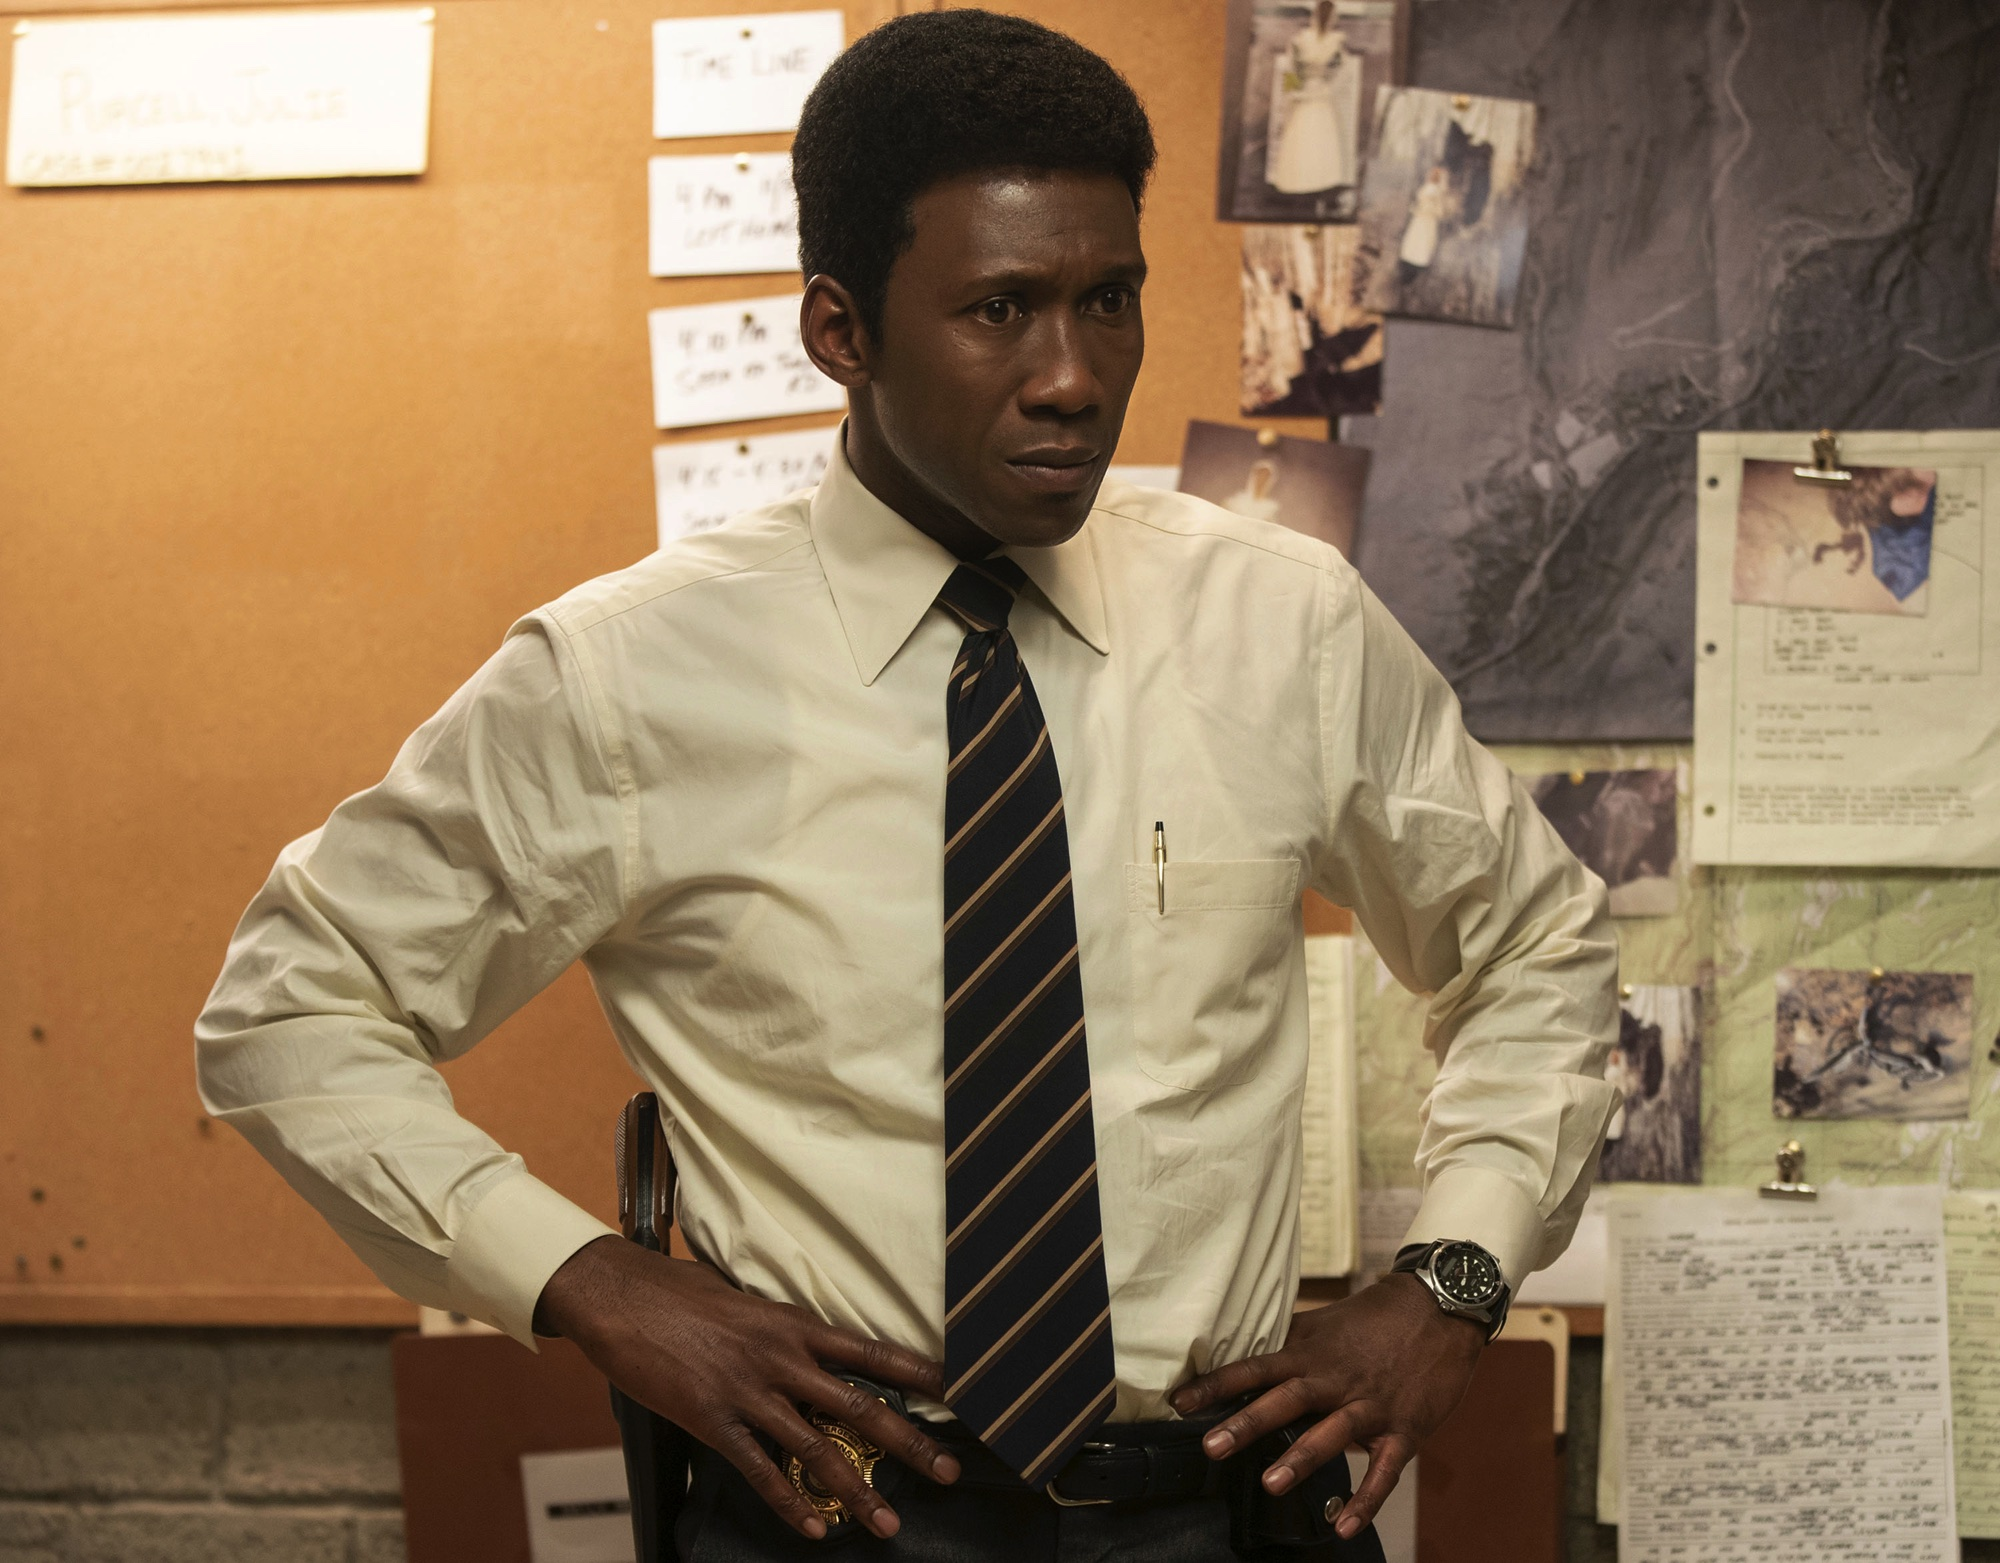 Mahershala Ali Casio wristwatch in HBO True Detective Season 3